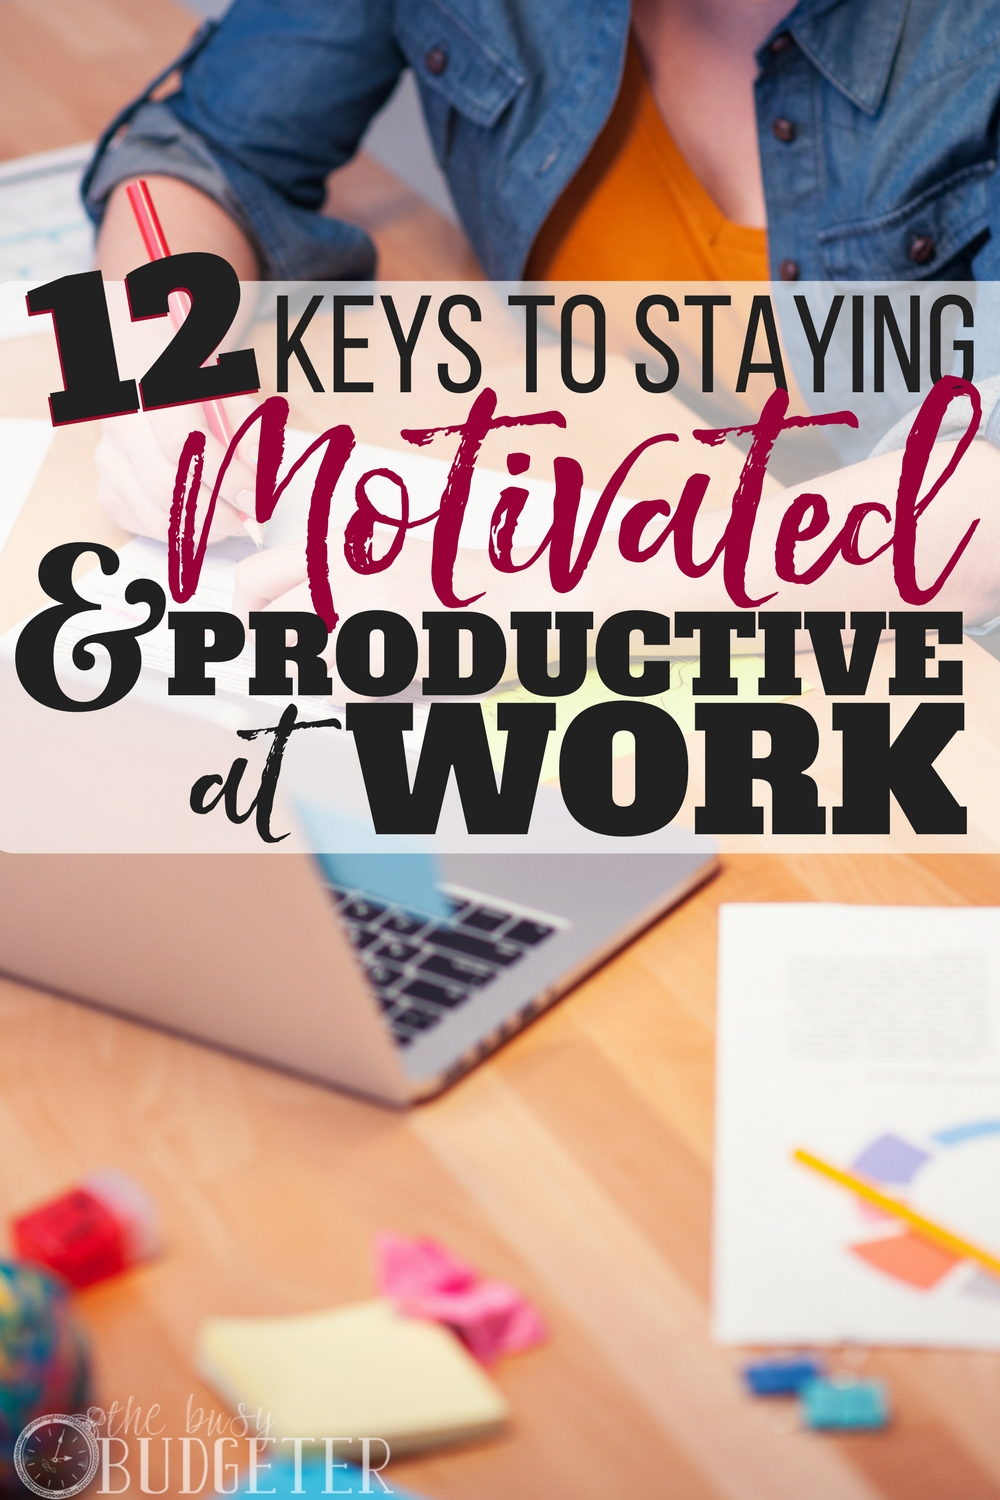 Productivity hasn't always been my strong suit but these tips are great. I got SO much more work done when I started implementing them and it really helped the day go by faster and kept me motivated (my boss even noticed!). Staying motivated at work as never been easier!